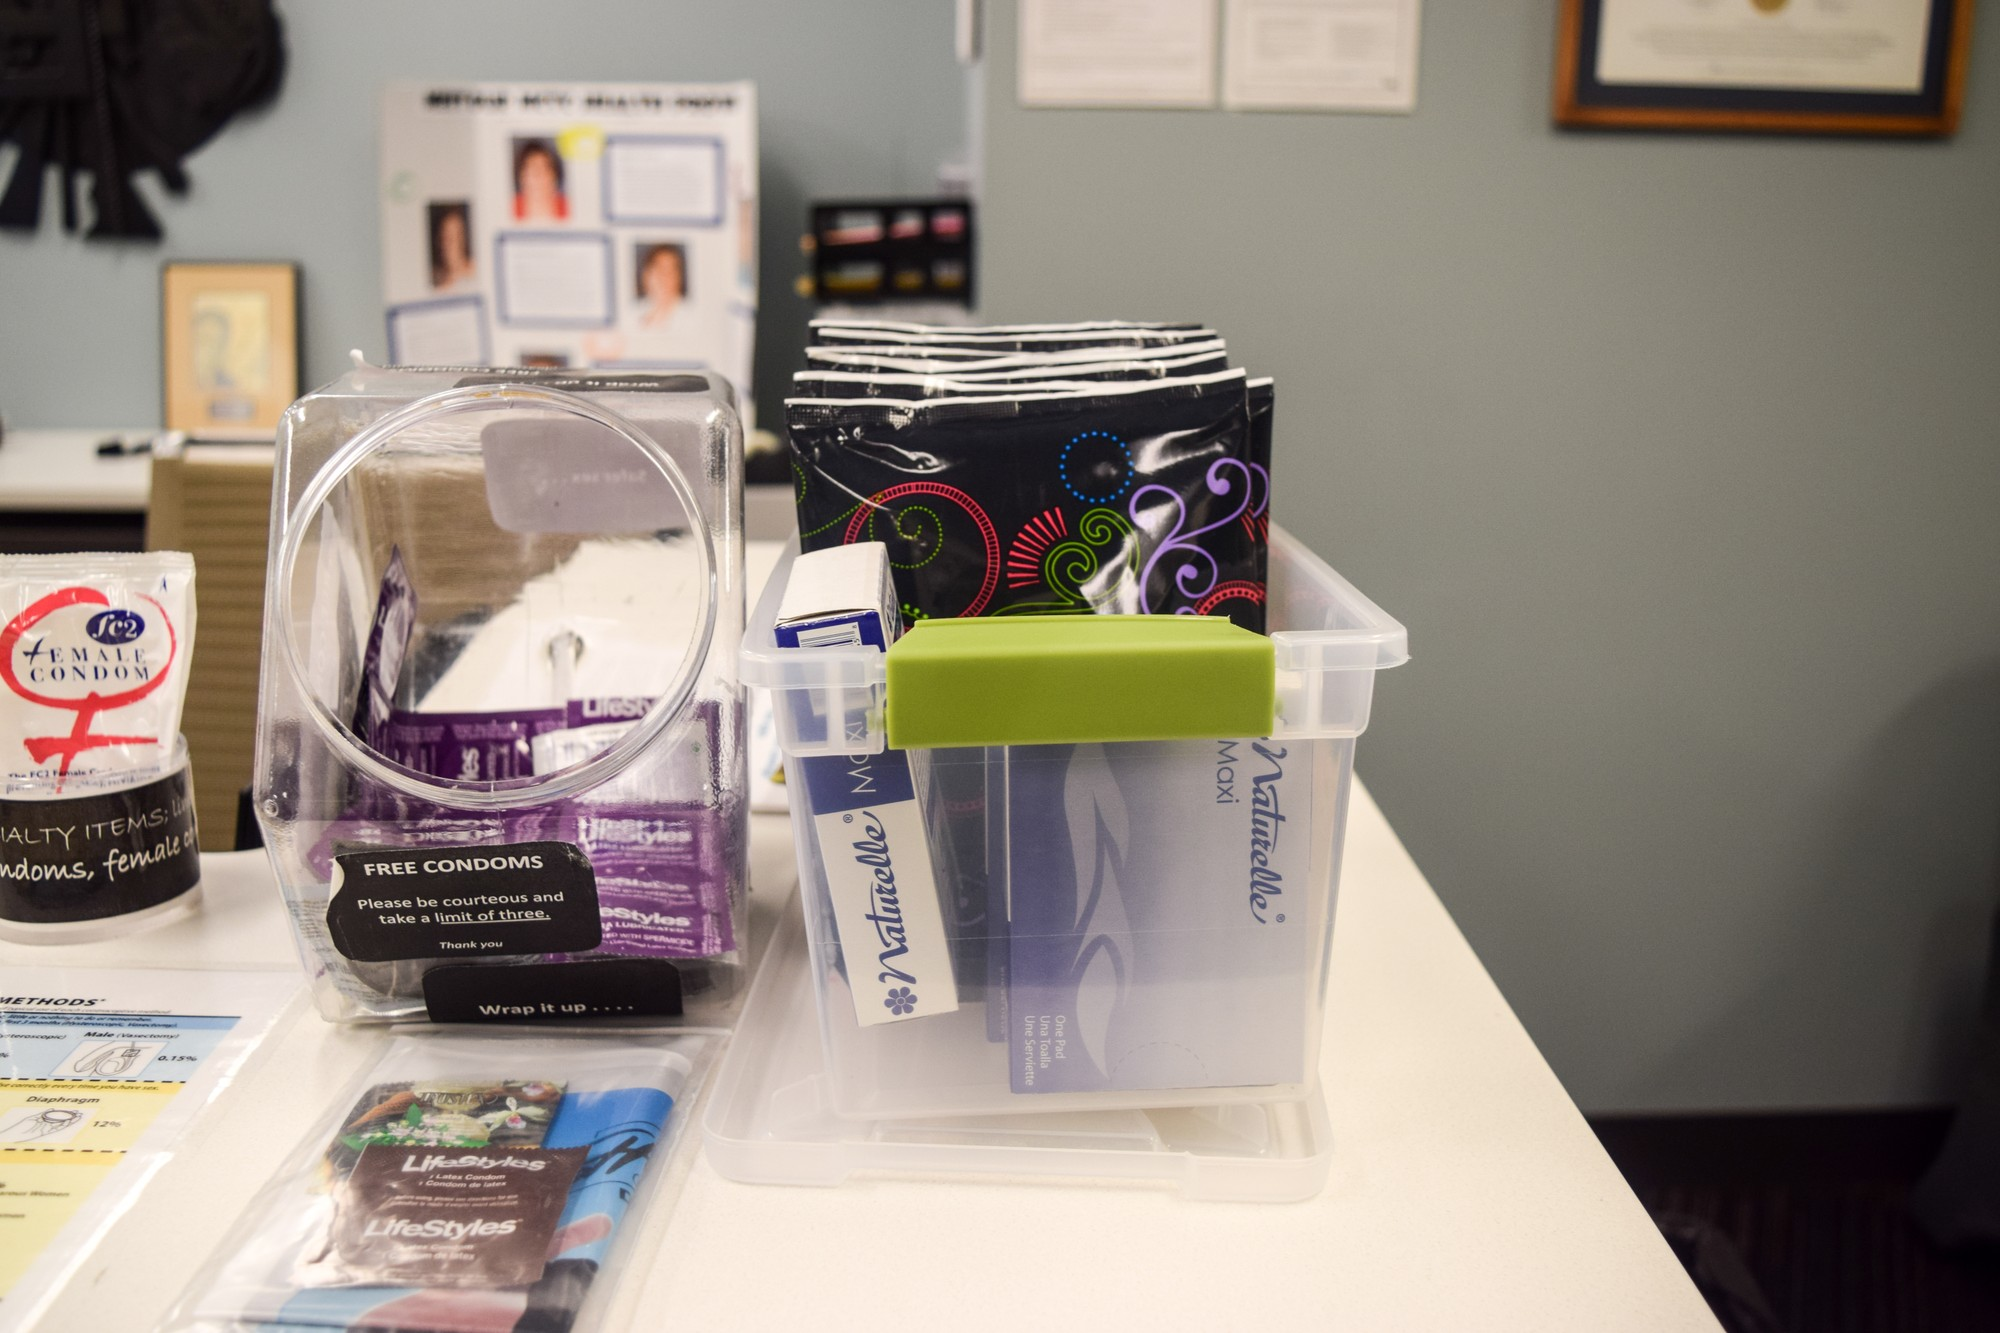 The Boynton Health Clinic has free supplies at their front desk for anyone to take. Photo credit: Emily Lazear